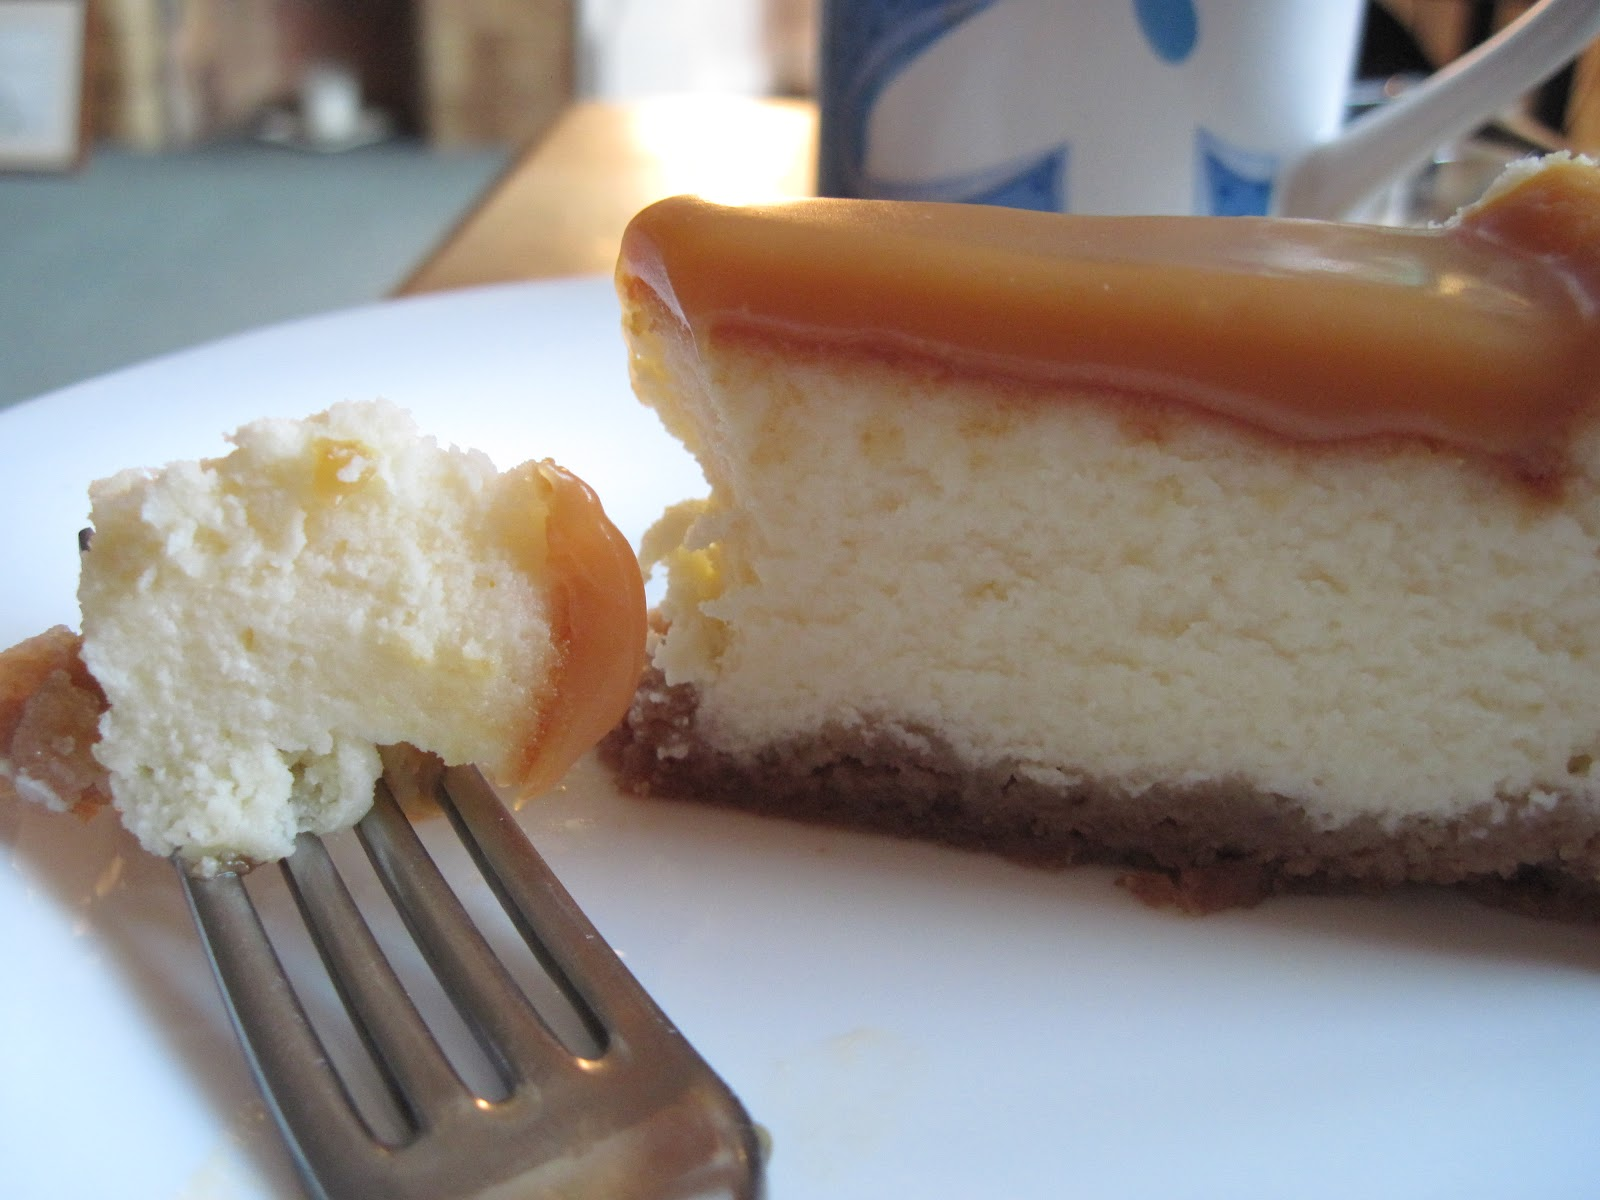 The Sugar Lump: White Chocolate Caramel Cheesecake